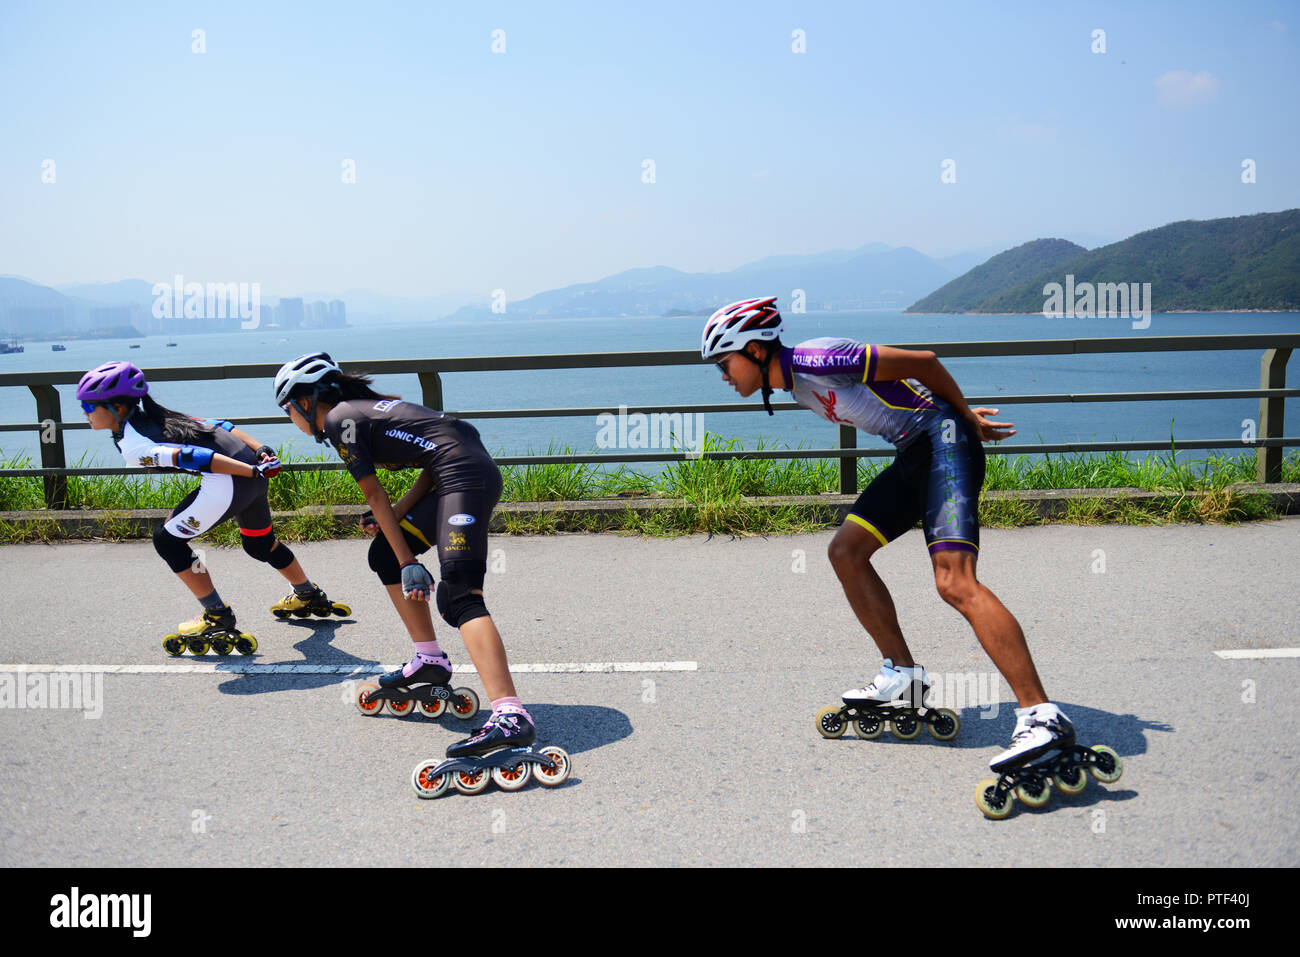 Rollerblading Stock Photos & Rollerblading Stock Images - Alamy